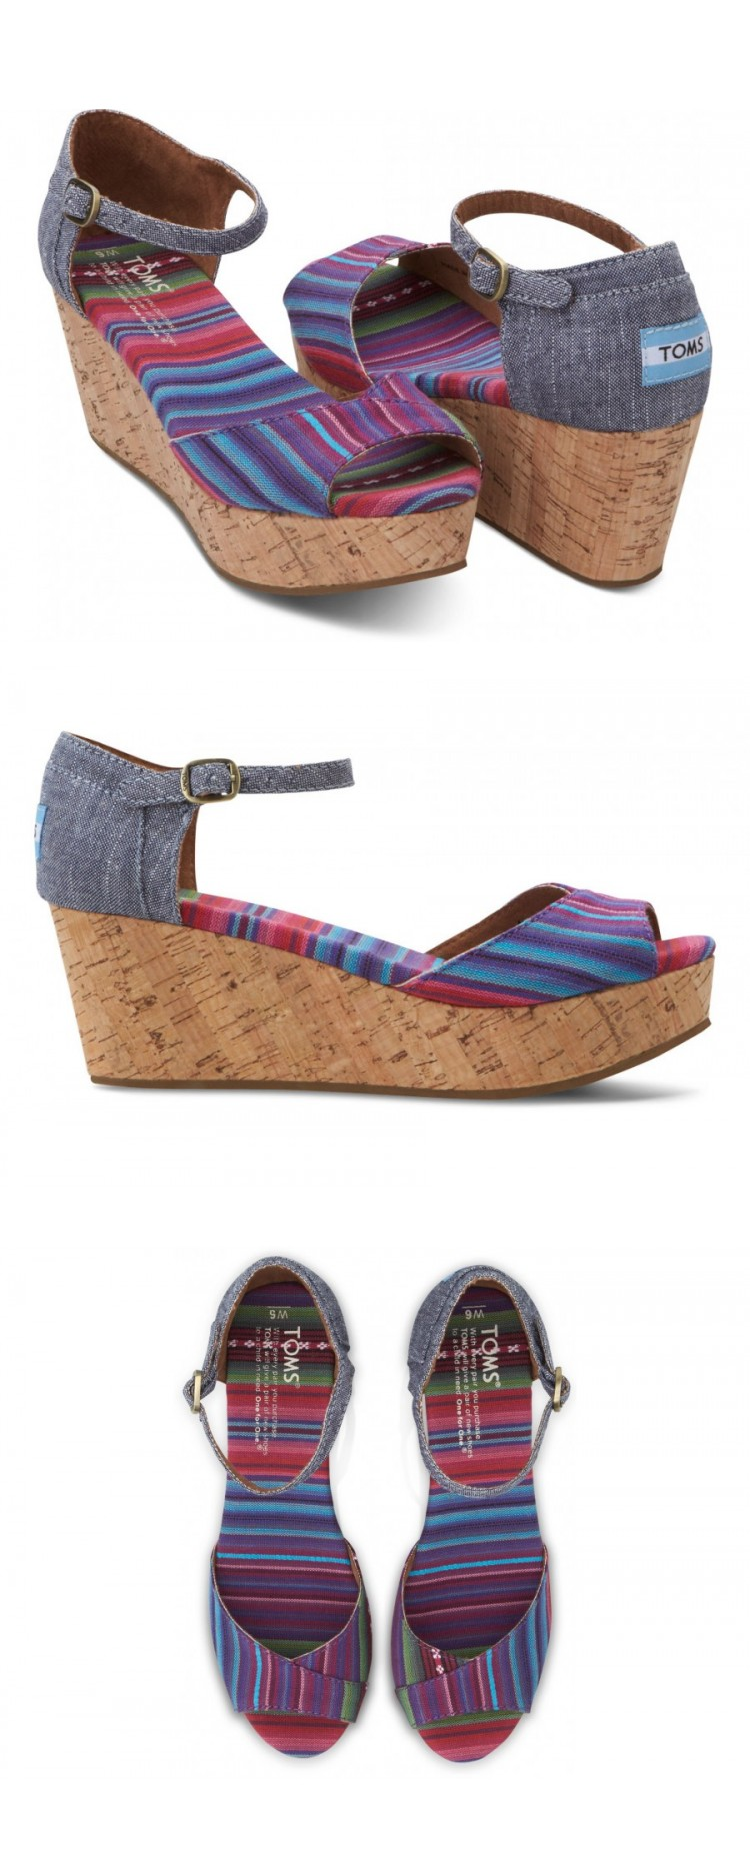 Get that summer look going with these great platform wedges by TOMS.  Pair them with everything from pants to shorts dresses and  skirts.  #Toms #Shoes #Summer #Color